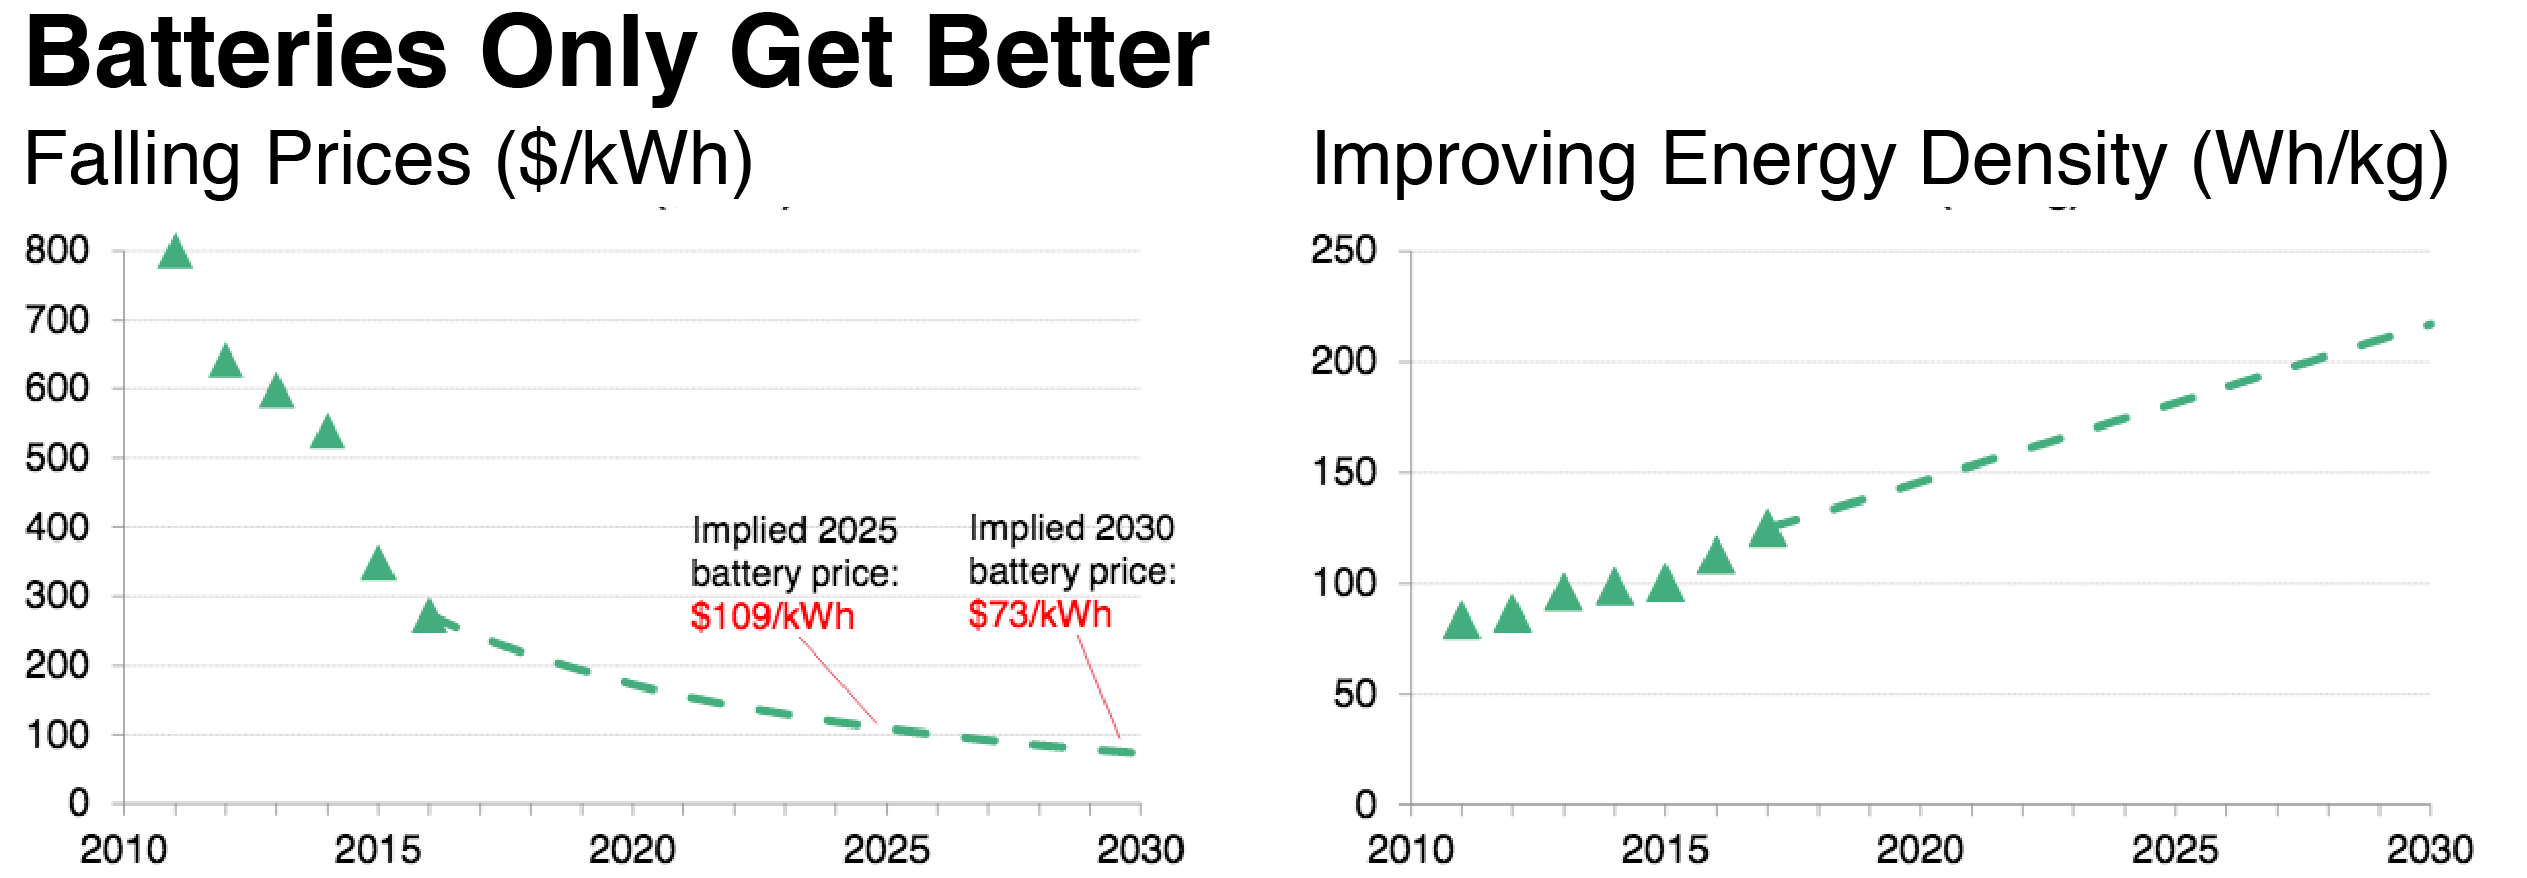 The Shrinking Battery Costs Lead Bloomberg To Forecast That Electric Cars Will Undercut Gasoline On Price By Mid 2020s